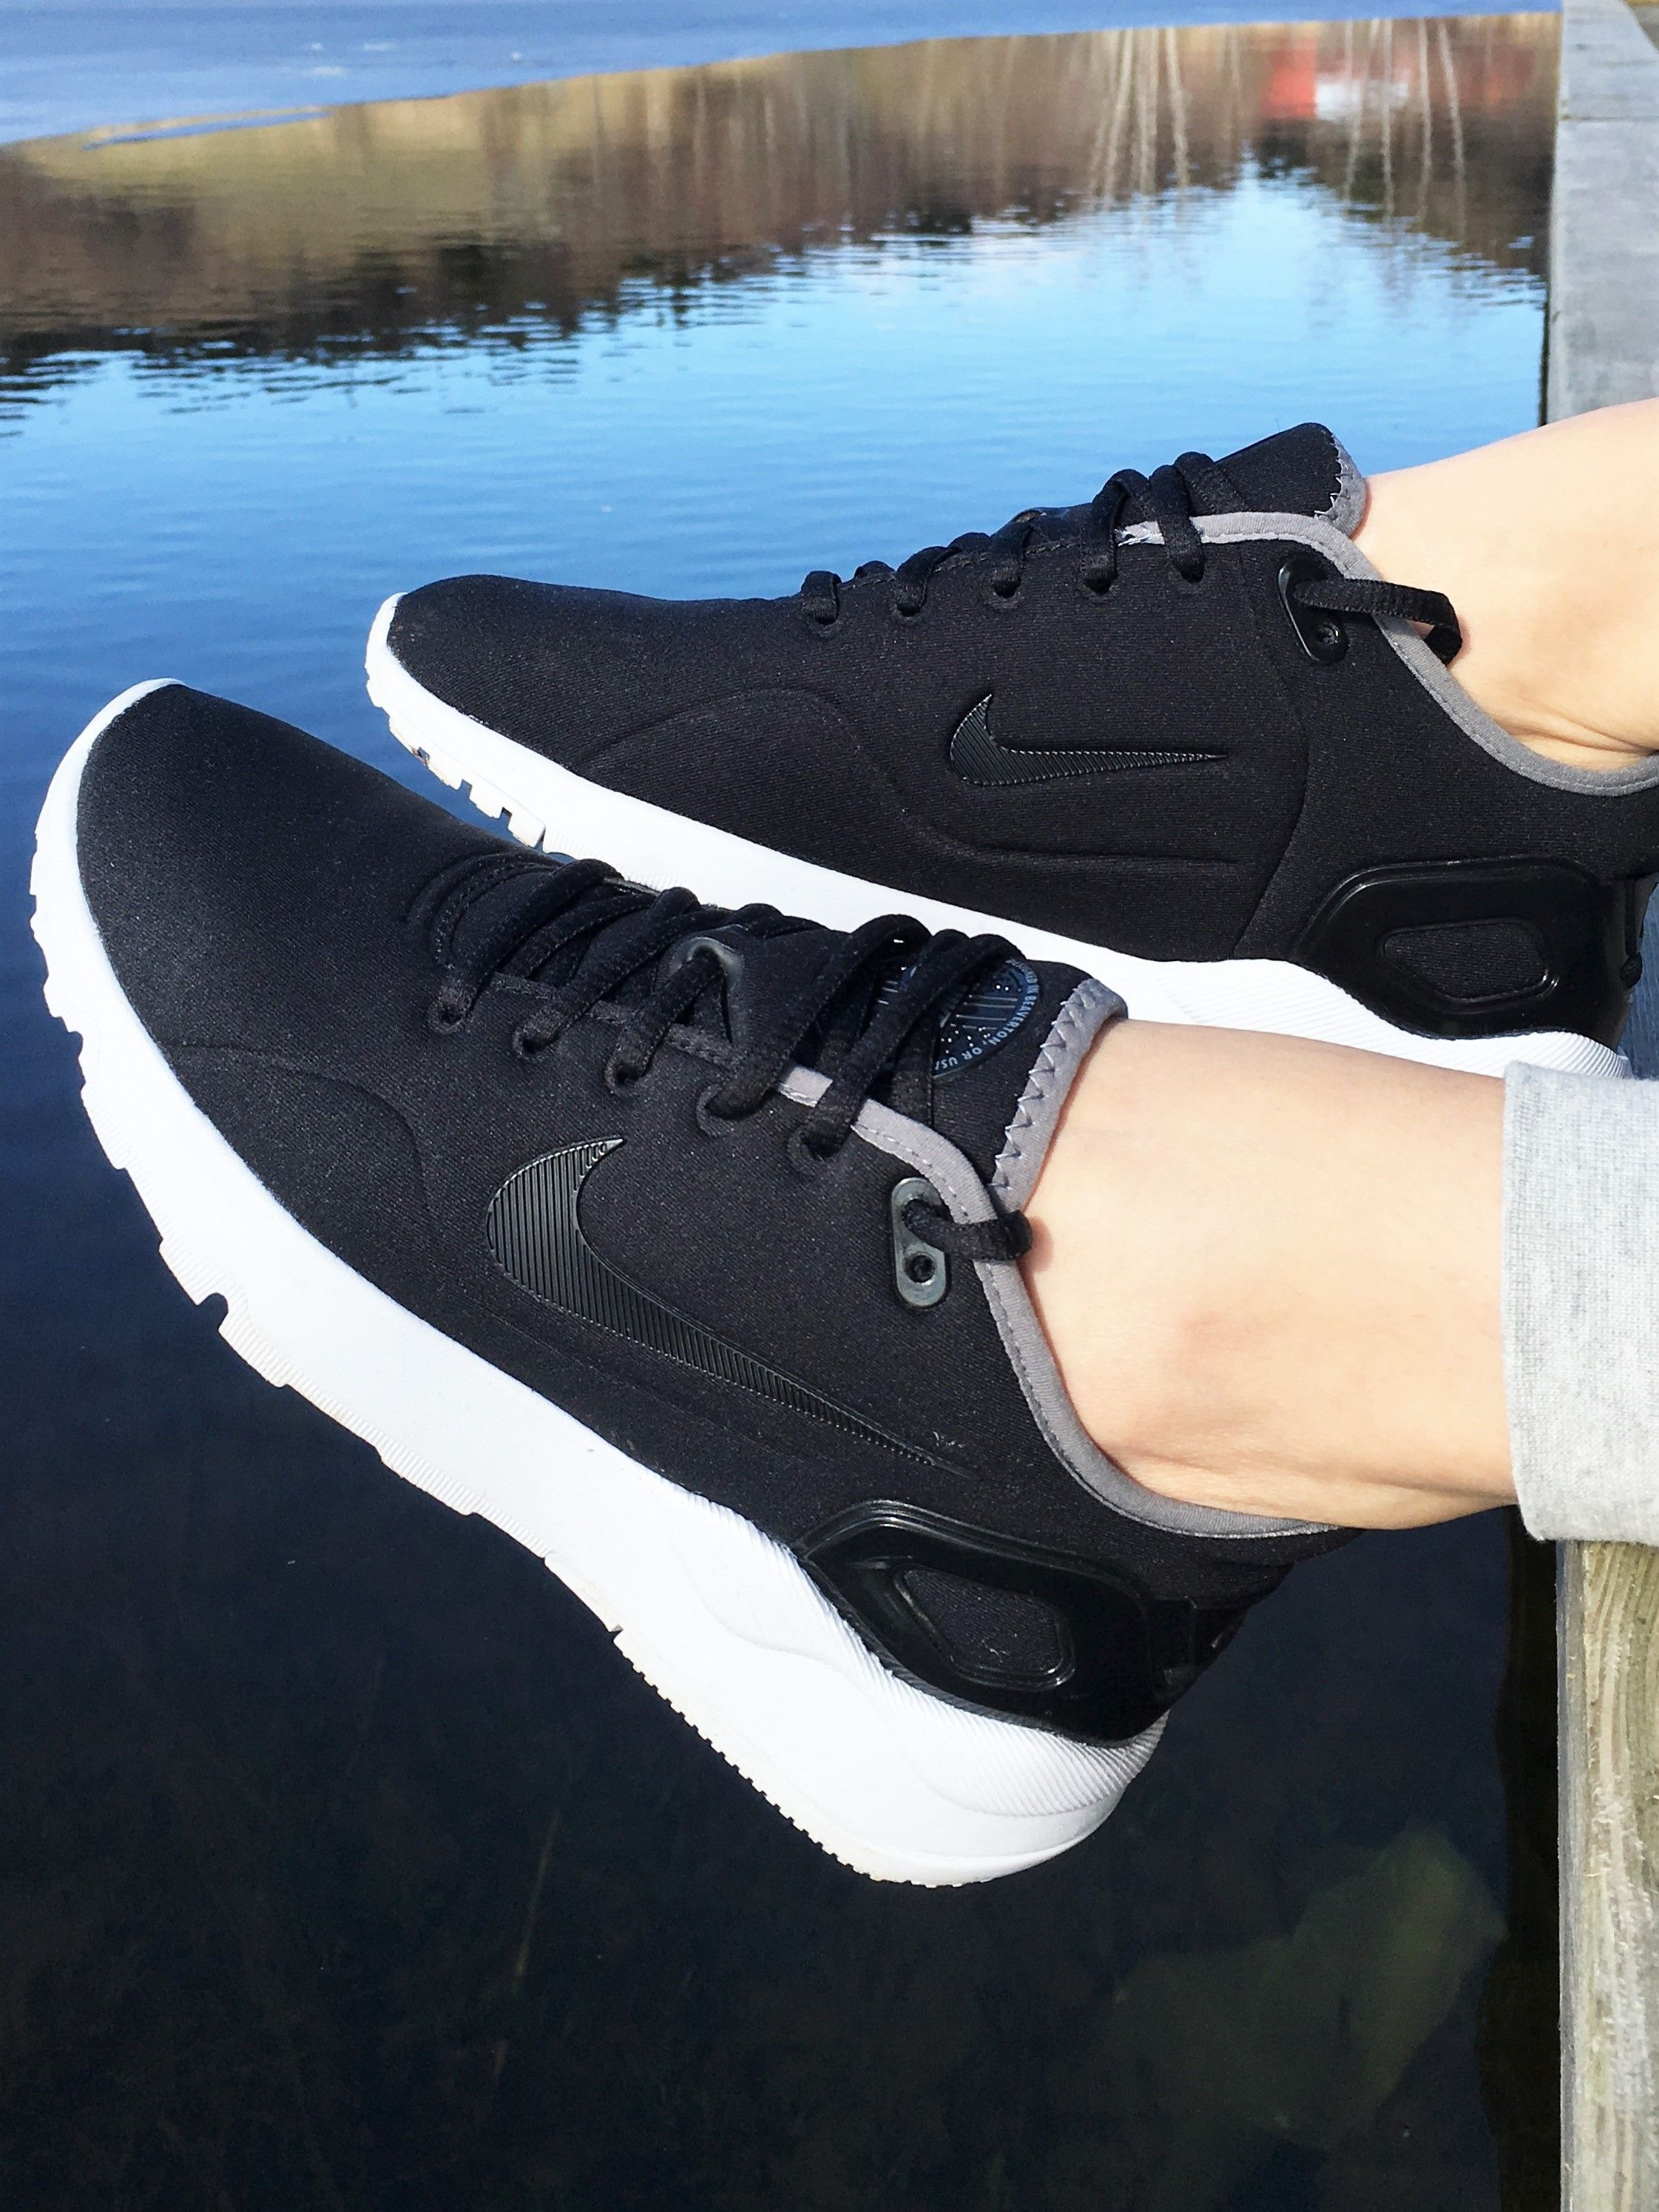 Nike LD Runner LW in Black  f53b5cd28